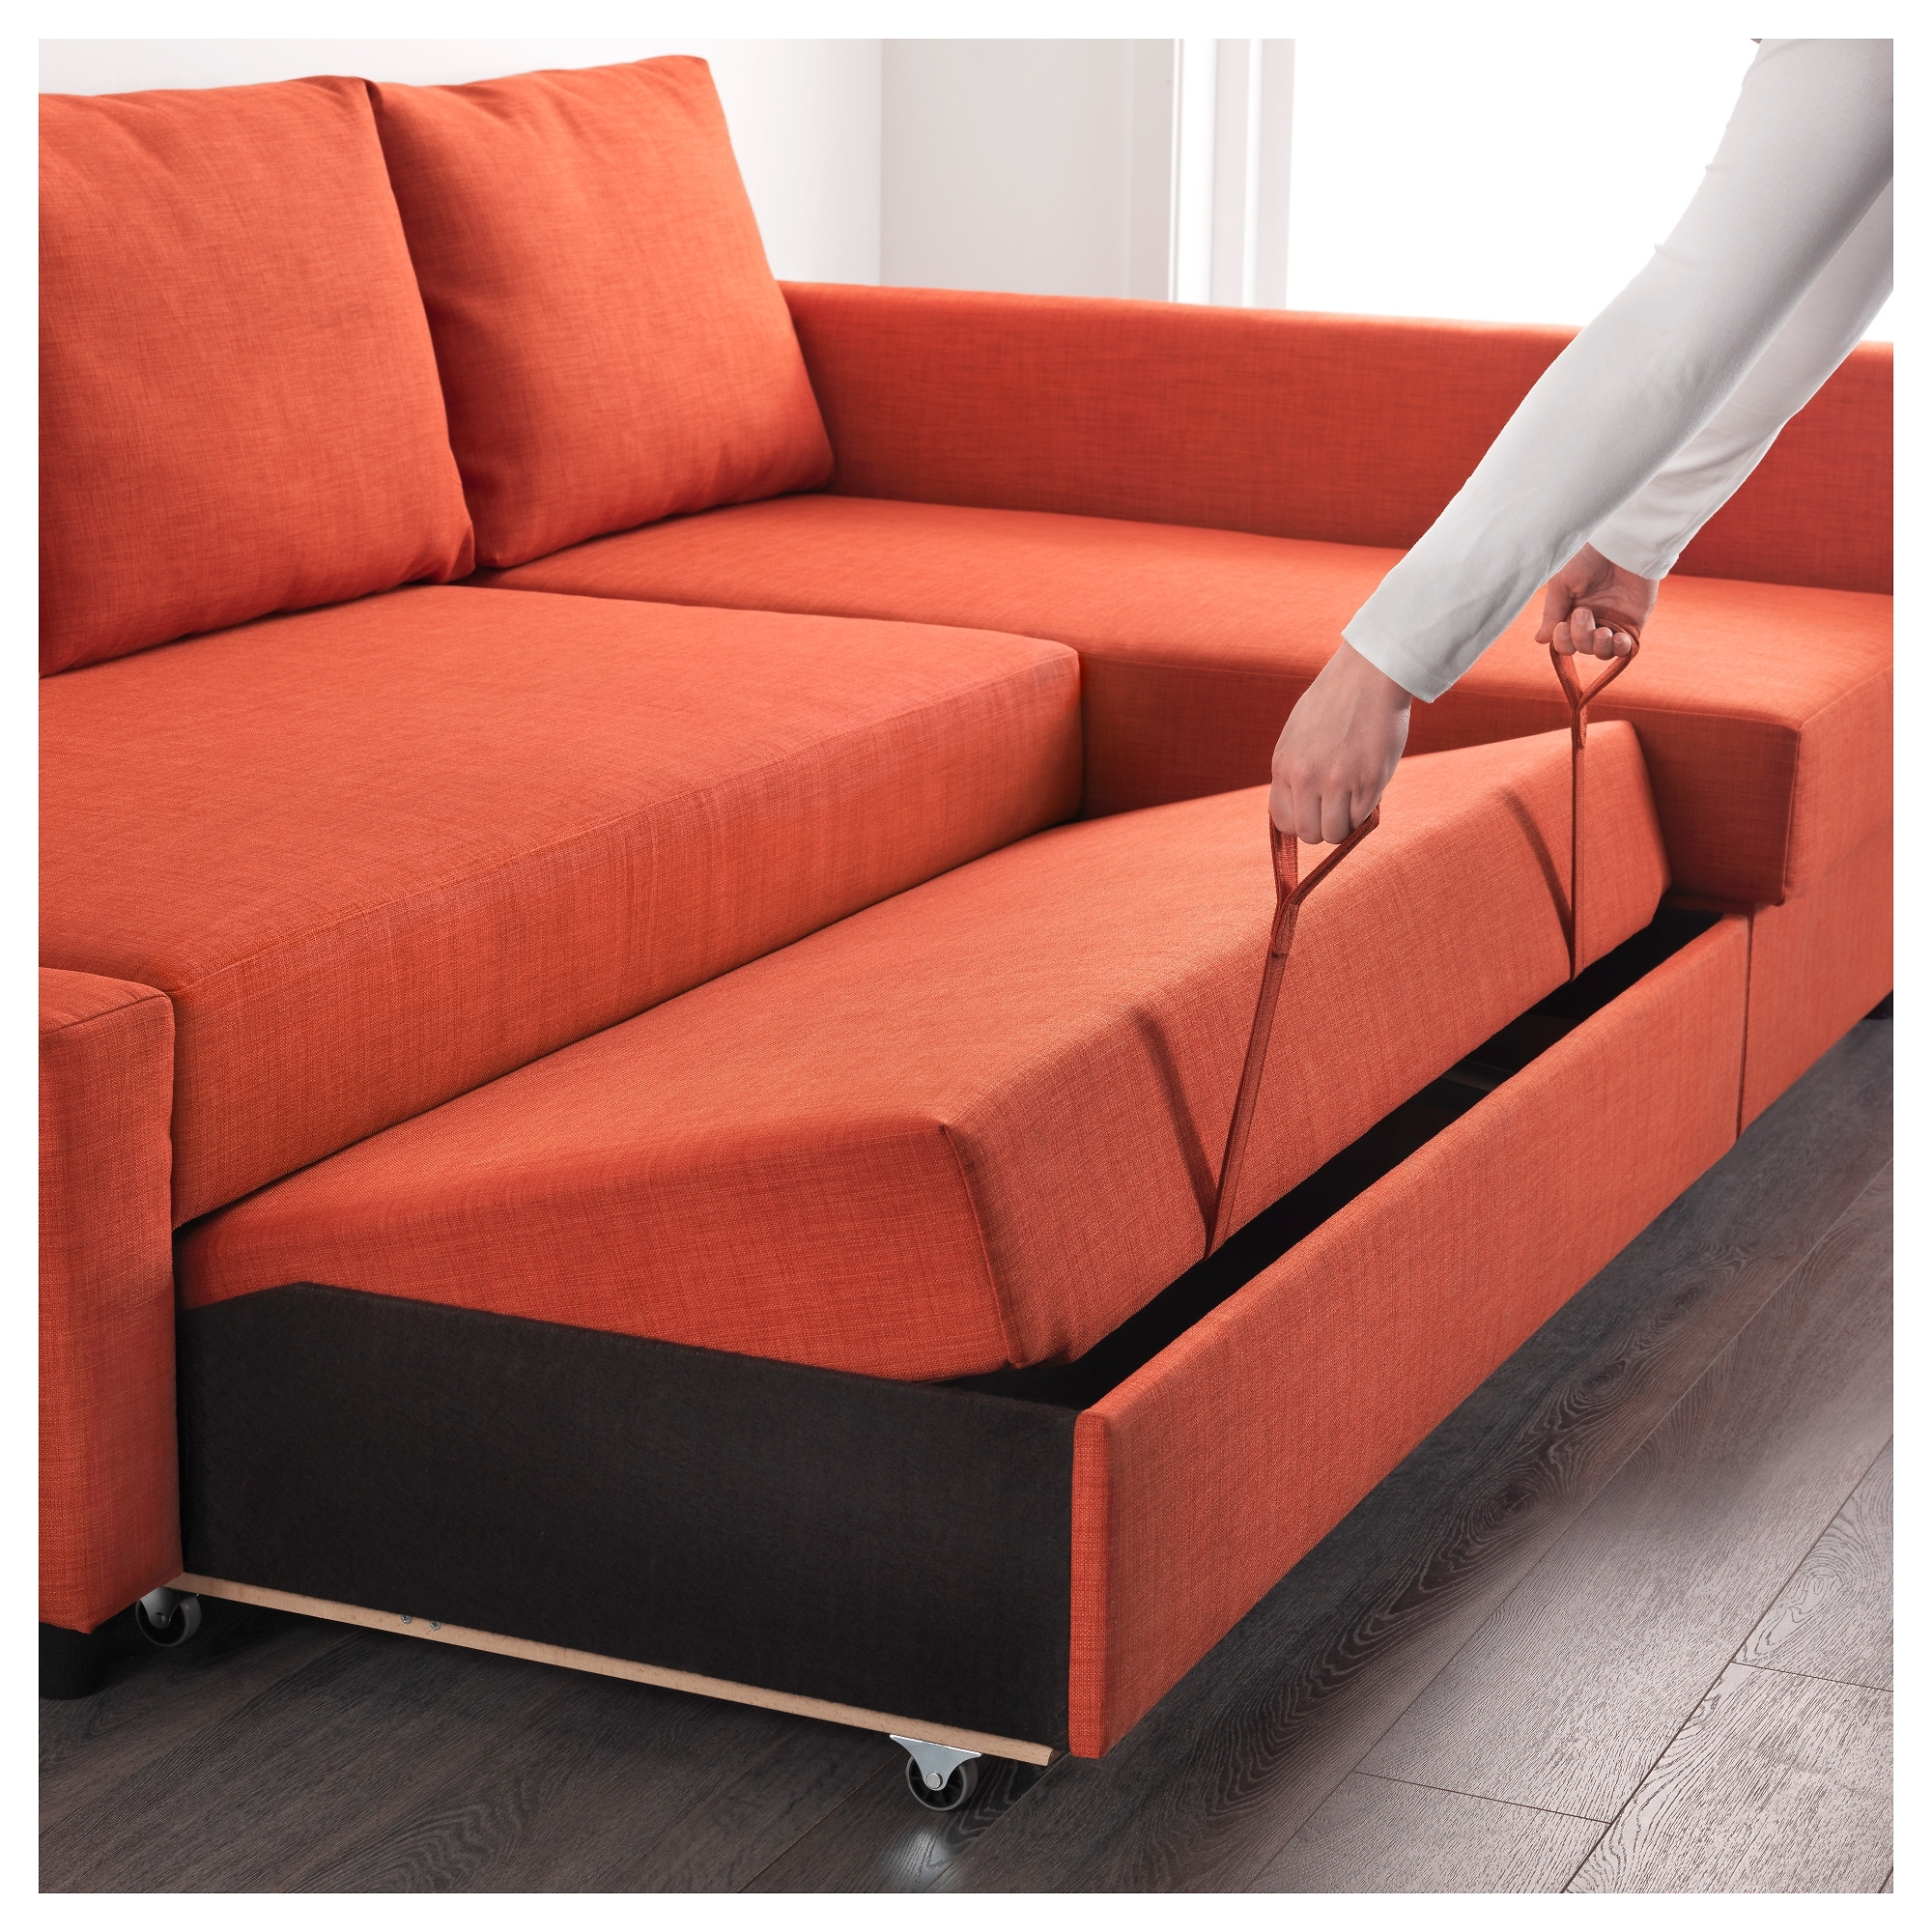 Friheten Corner Sofa Bed With Storage Skiftebo Dark Orange – Ikea For Fashionable Ikea Corner Sofas With Storage (View 8 of 15)